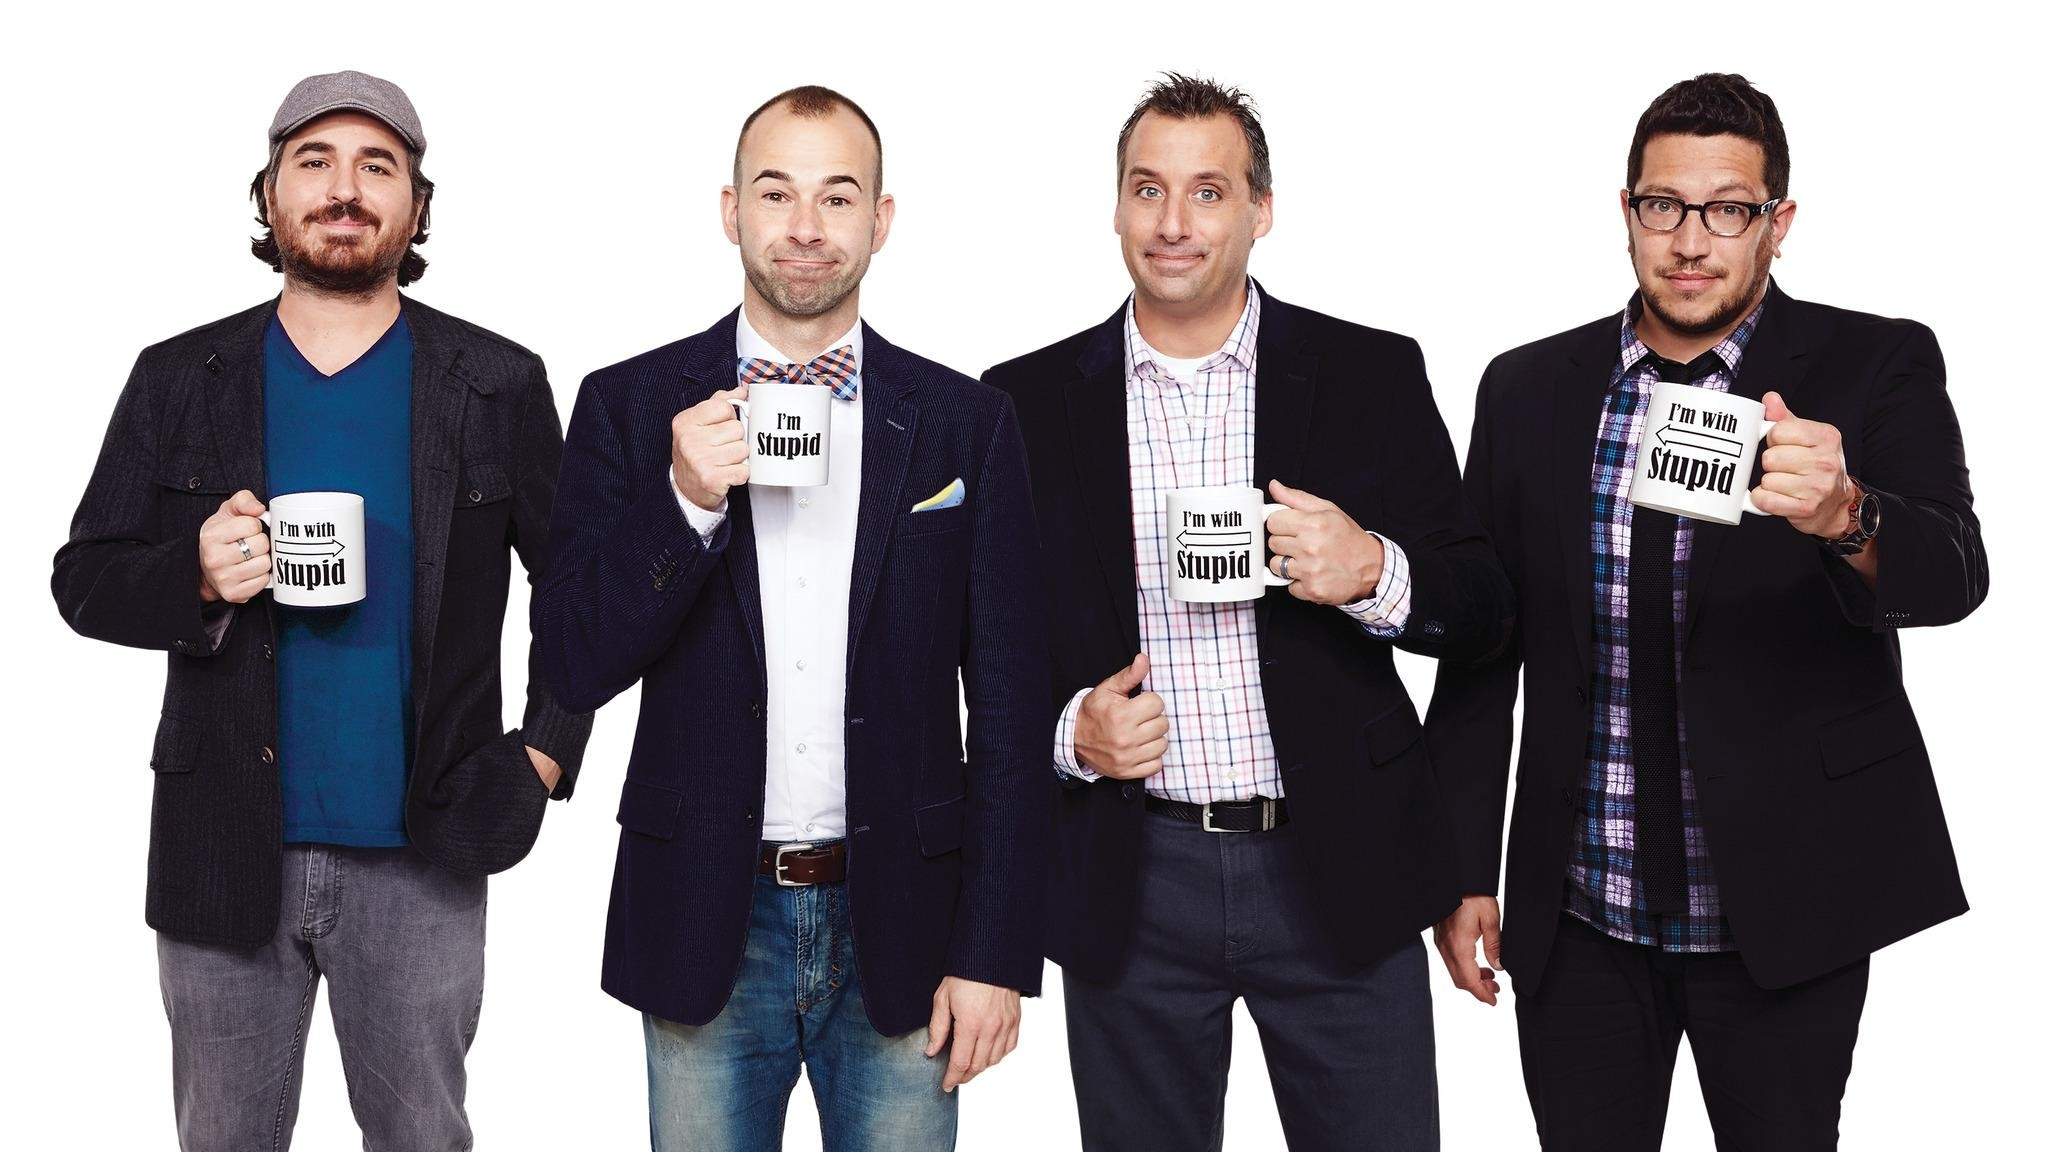 2048x1152 impractical jokers images larry HD wallpaper and background photos